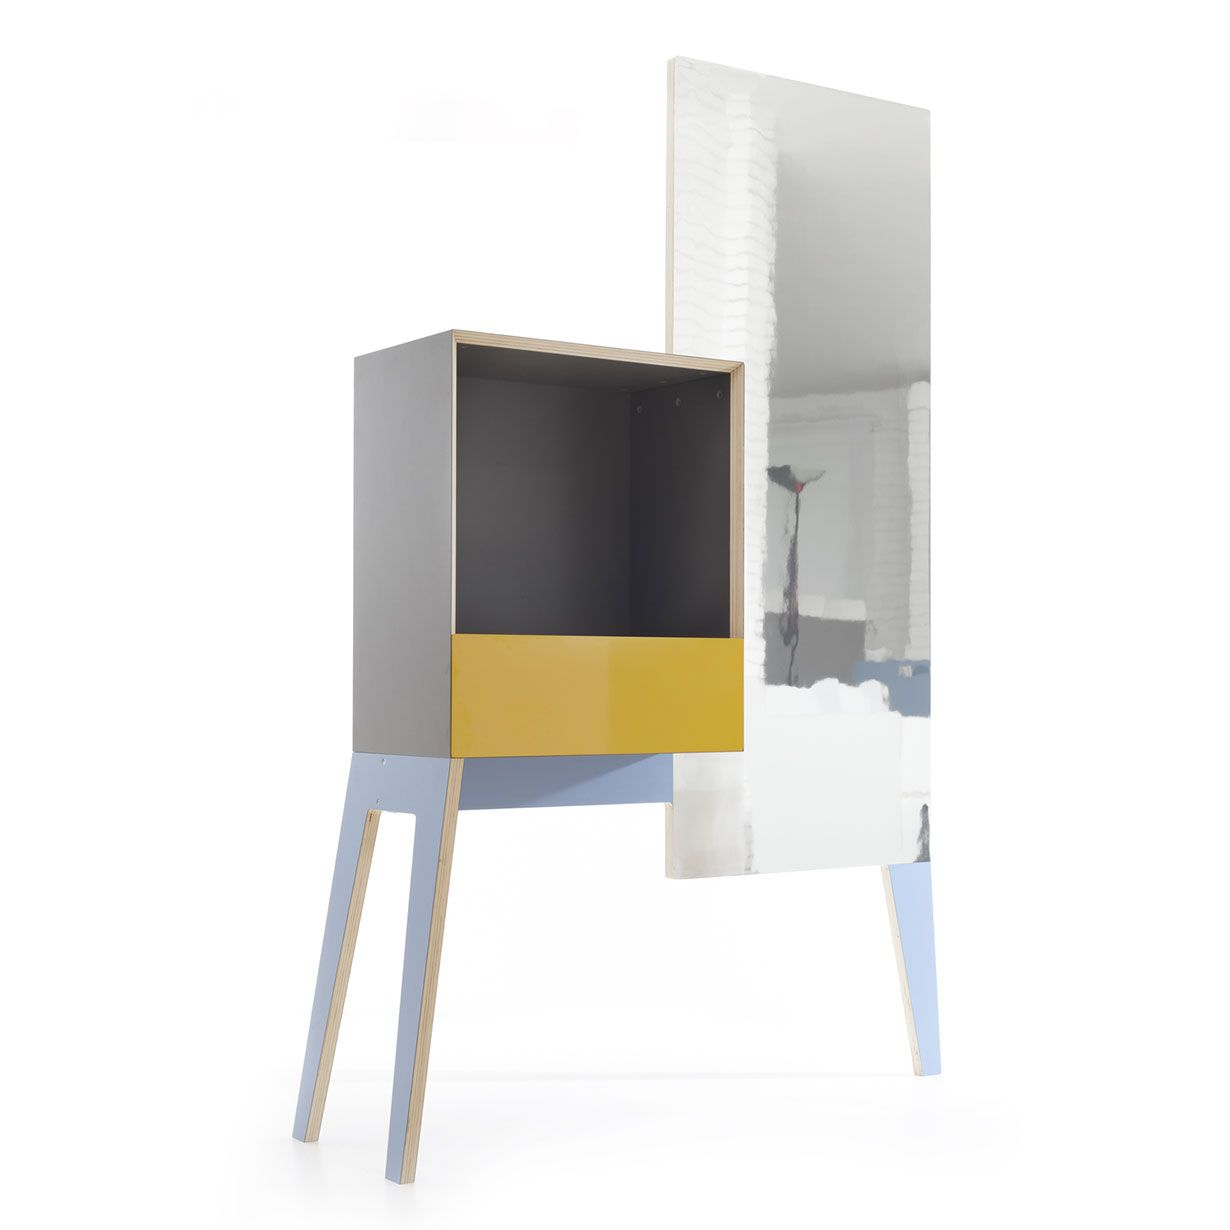 Versatile piece of furniture that can be used at the entrance of your house as coin dish, coat rack or mirror thanks to its features. Through its functions it can also find its place also in other situations like the sleeping area or the bathroom.